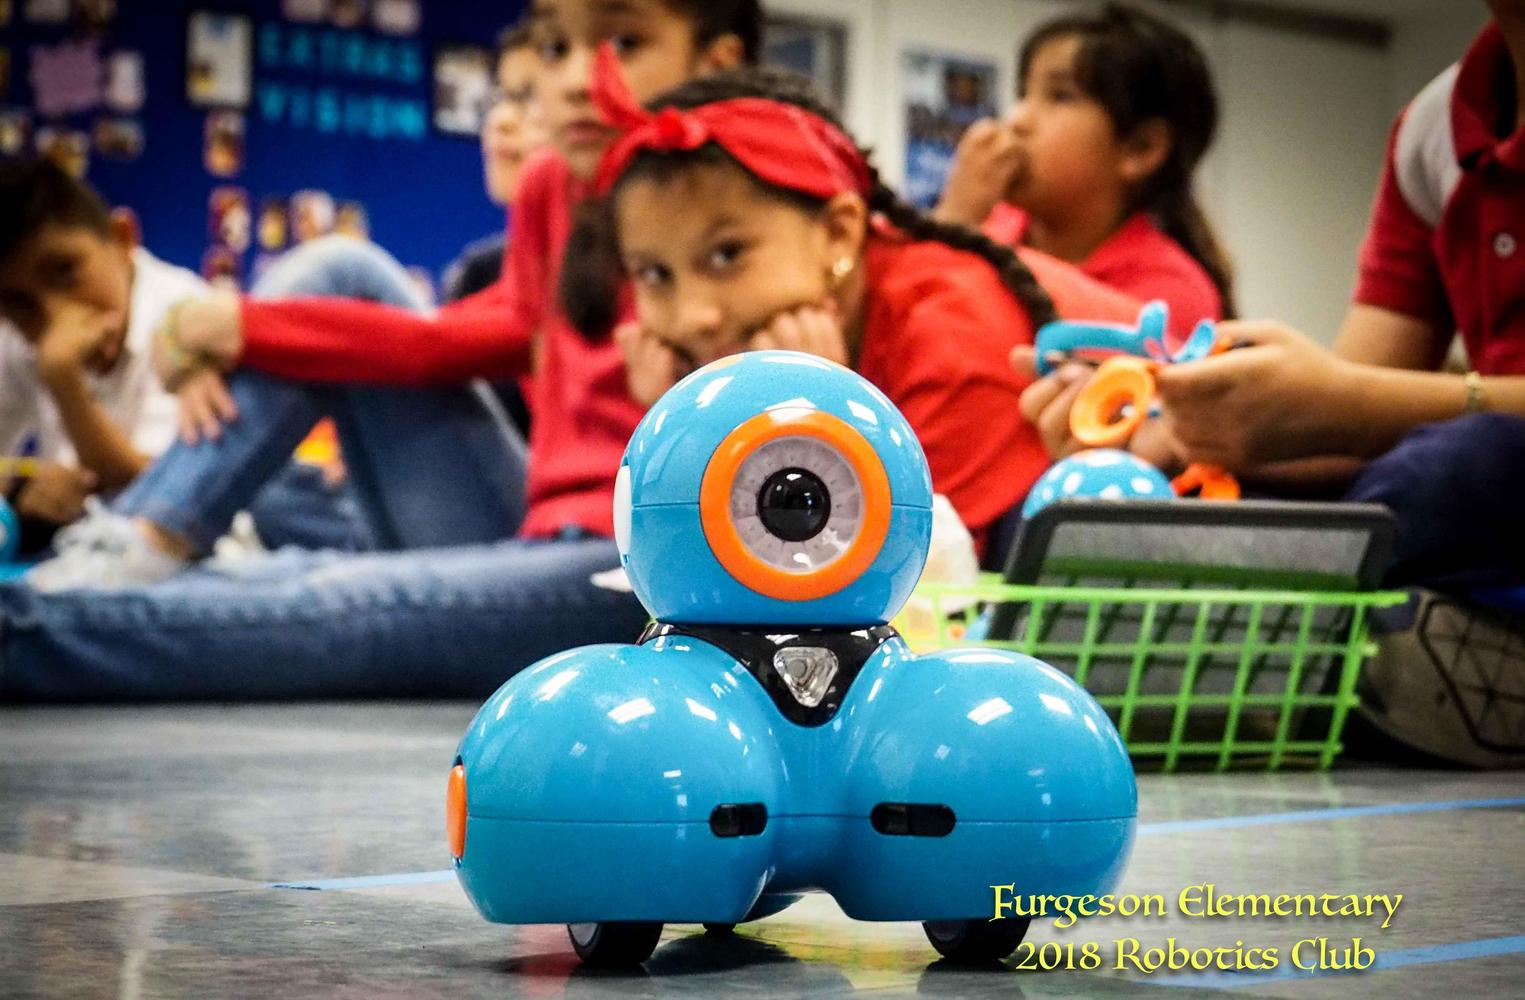 picture of robot with students in background